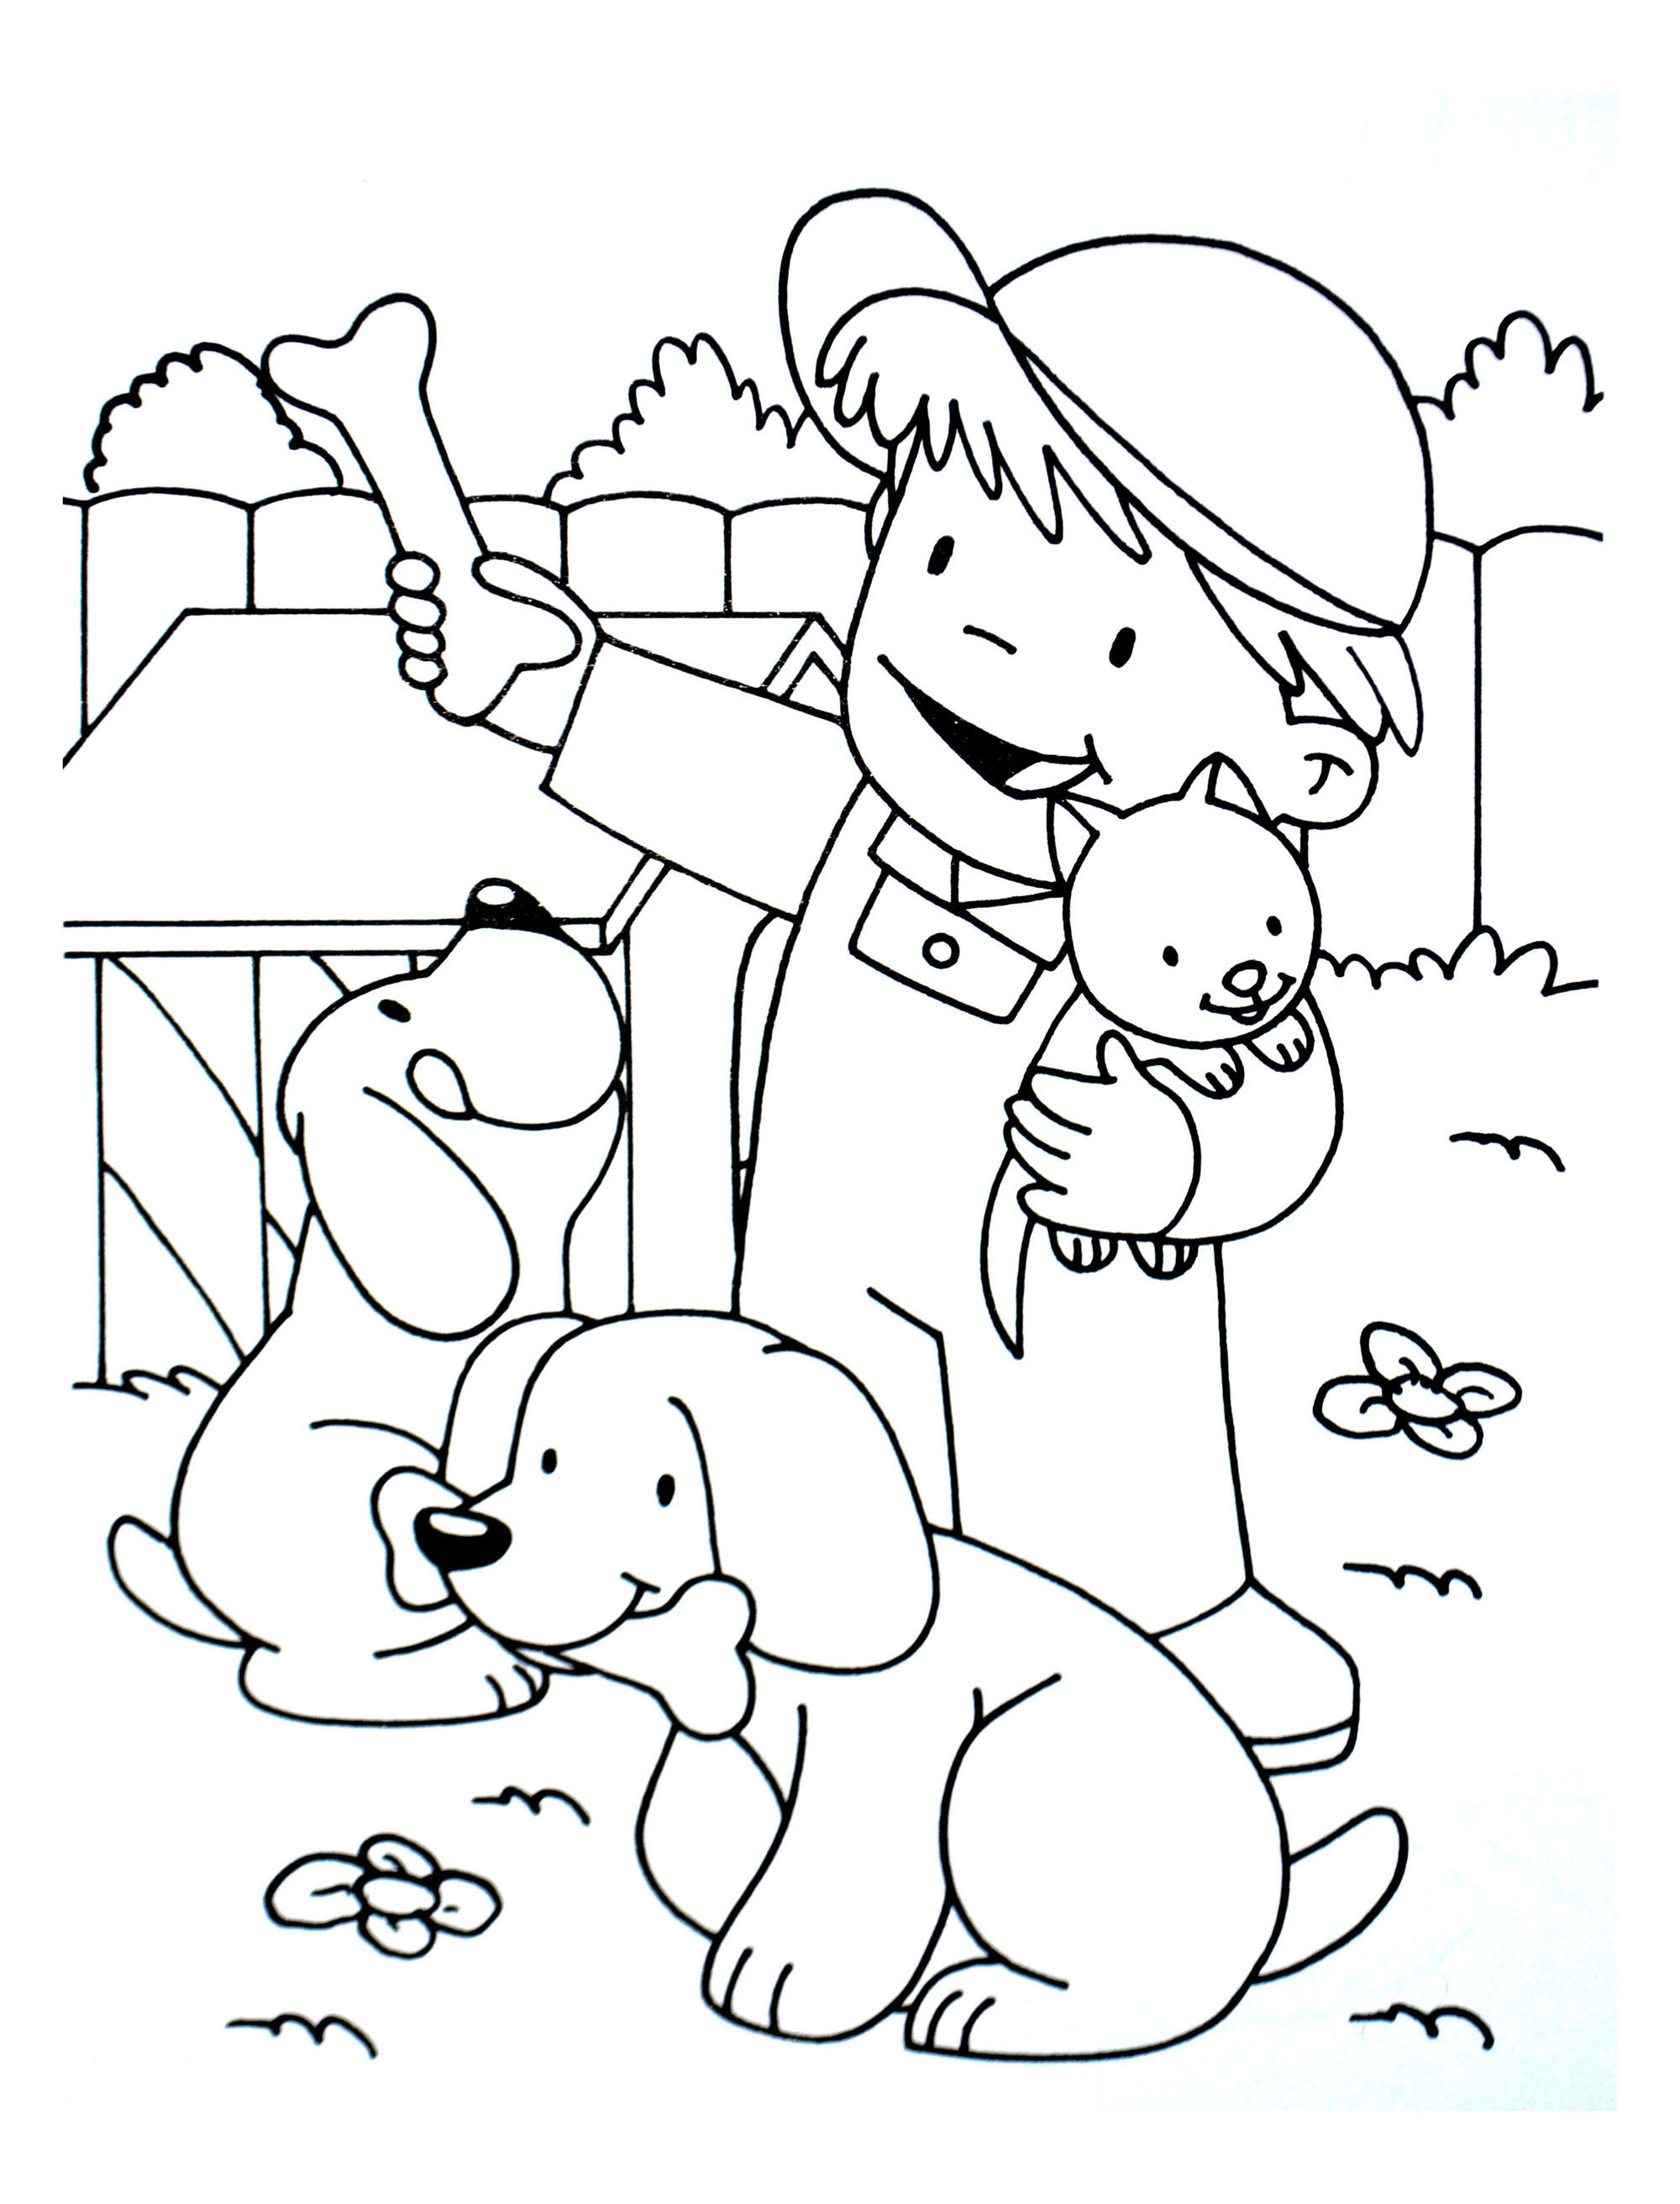 dogs coloring pages for adults justcolor